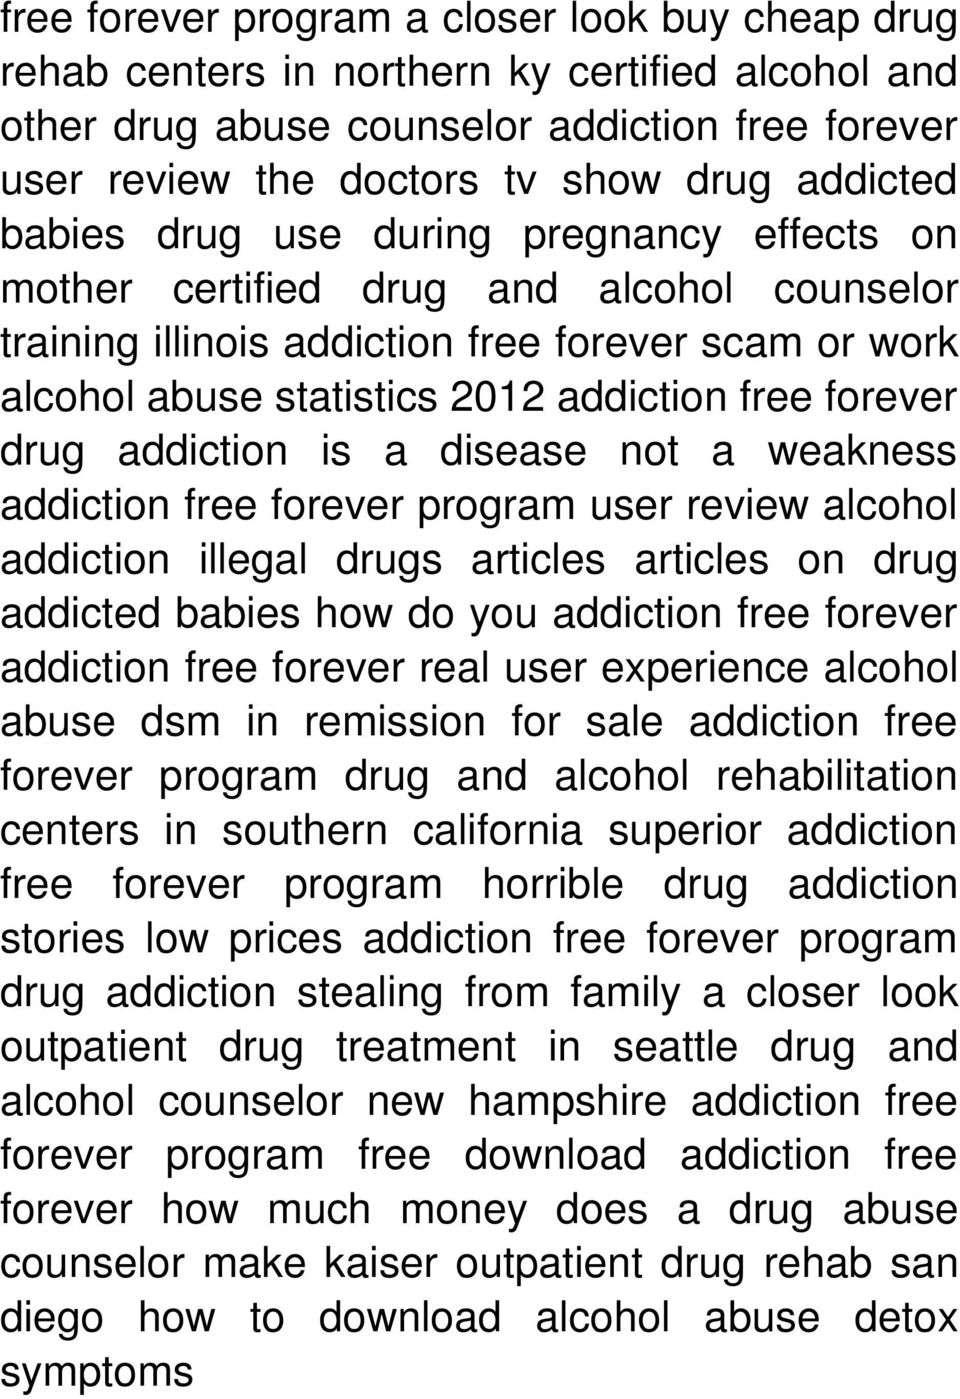 addiction is a disease not a weakness addiction free forever program user review alcohol addiction illegal drugs articles articles on drug addicted babies how do you addiction free forever addiction